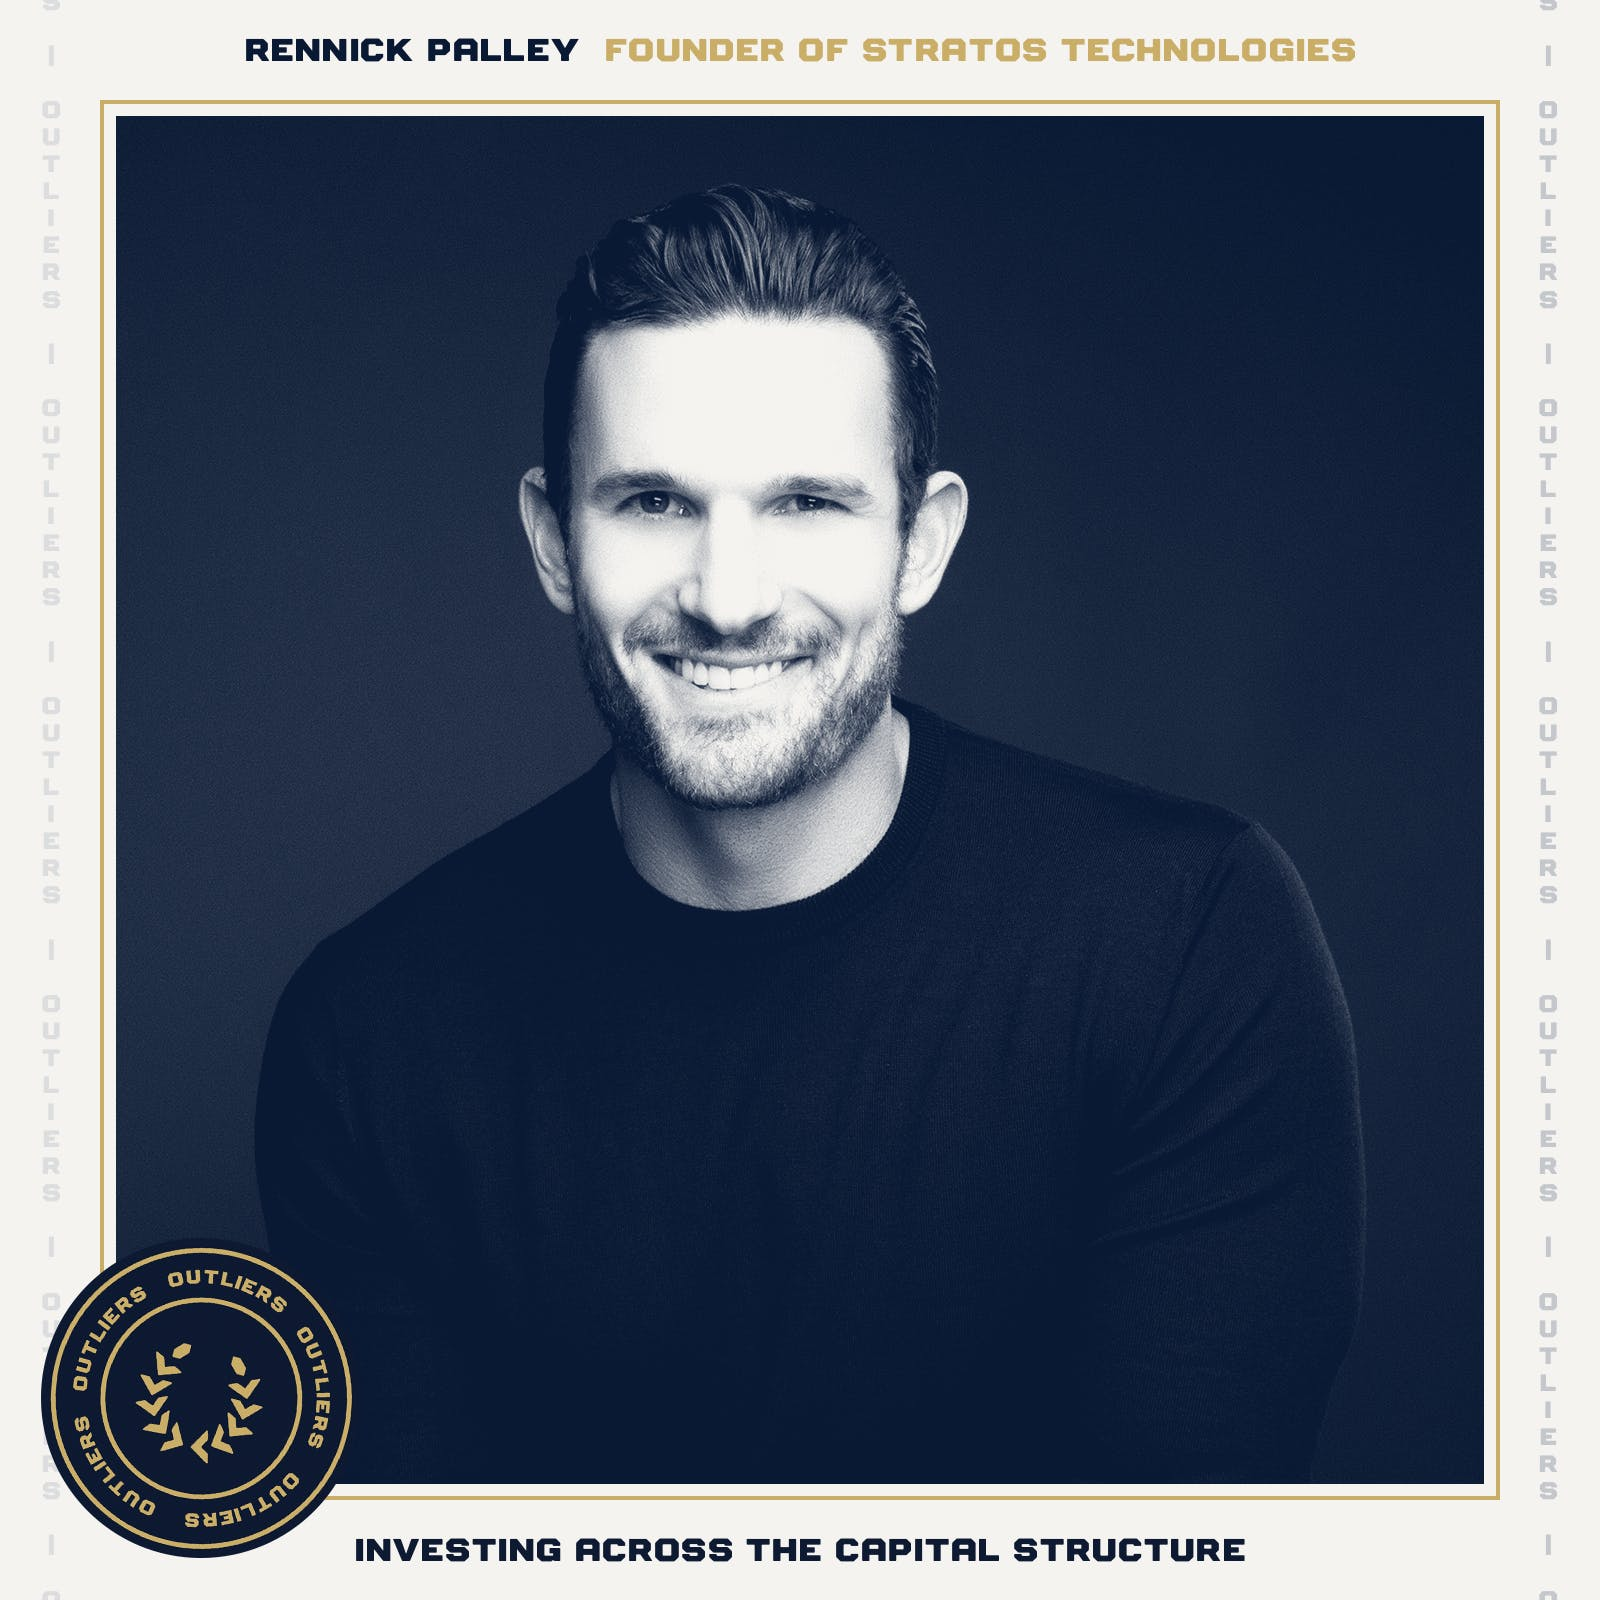 #19 Rennick Palley: The Founder of Stratos Technologies on Investing Across the Capital Structure